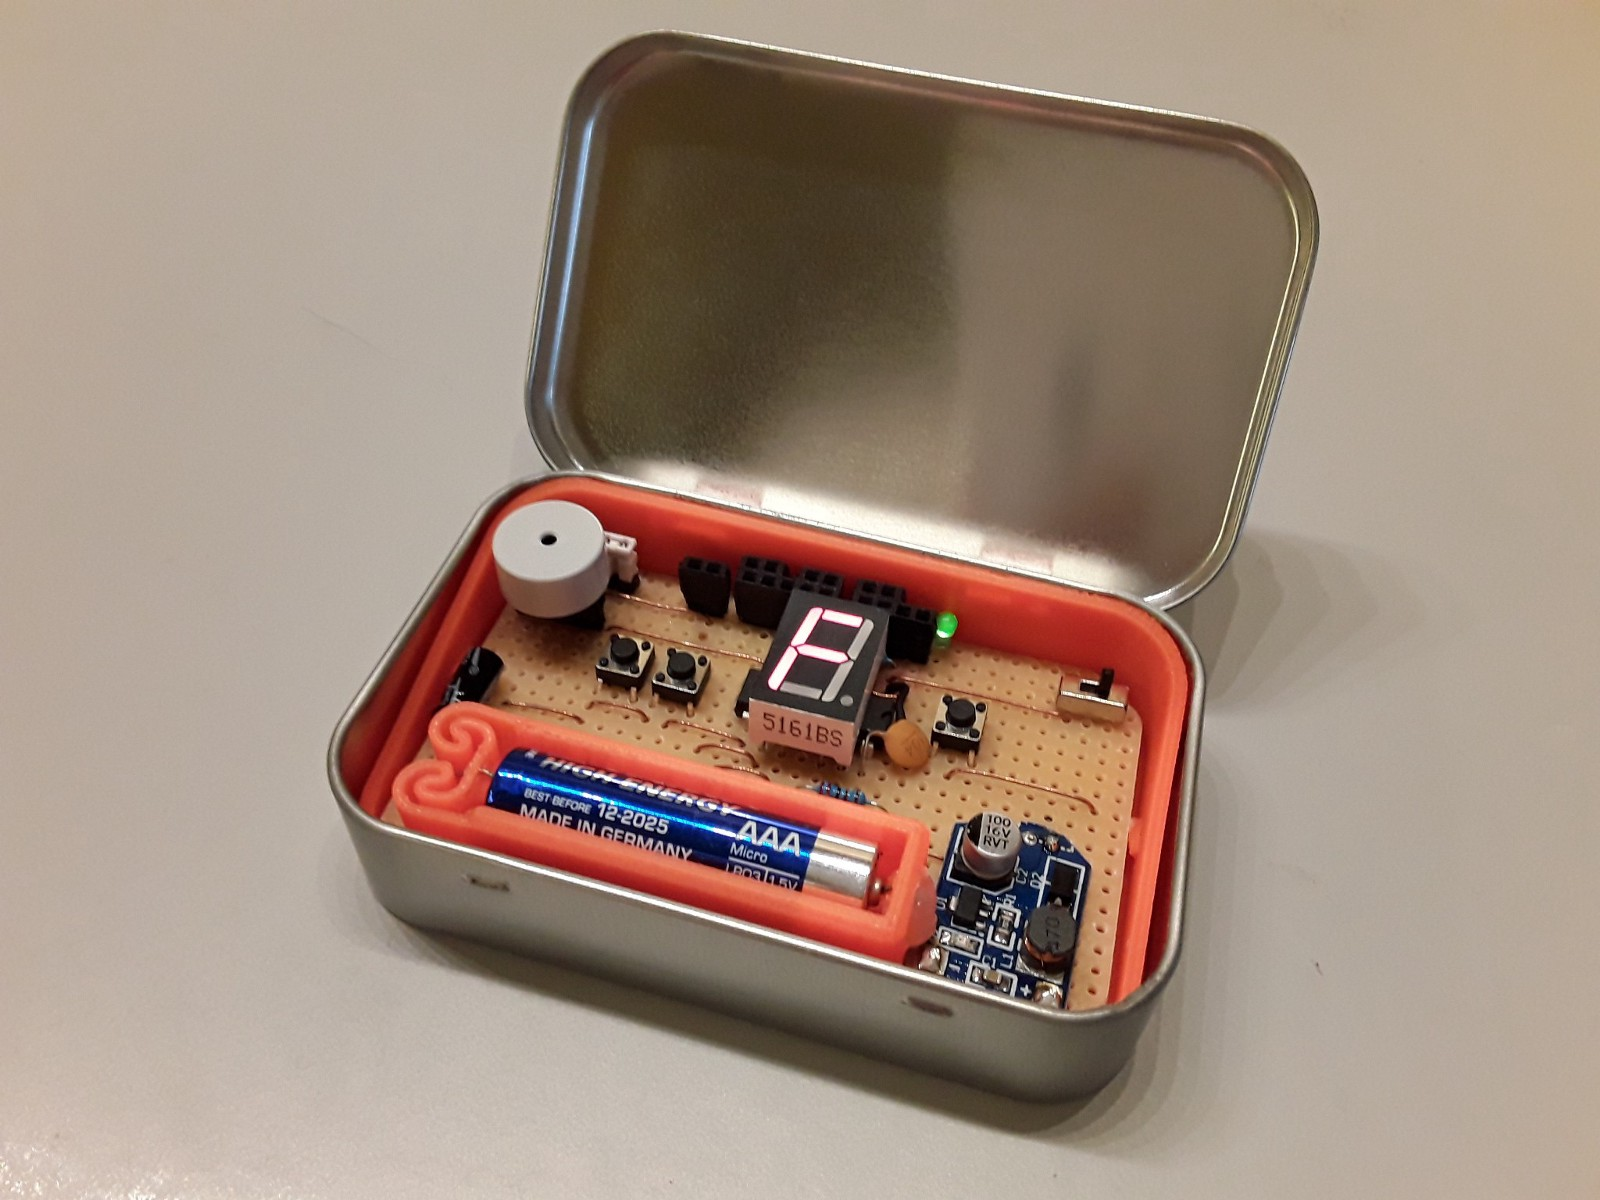 FATCAT Is a Drum Machine, Synth, and Arpeggiator Stuffed into an Altoids Tin